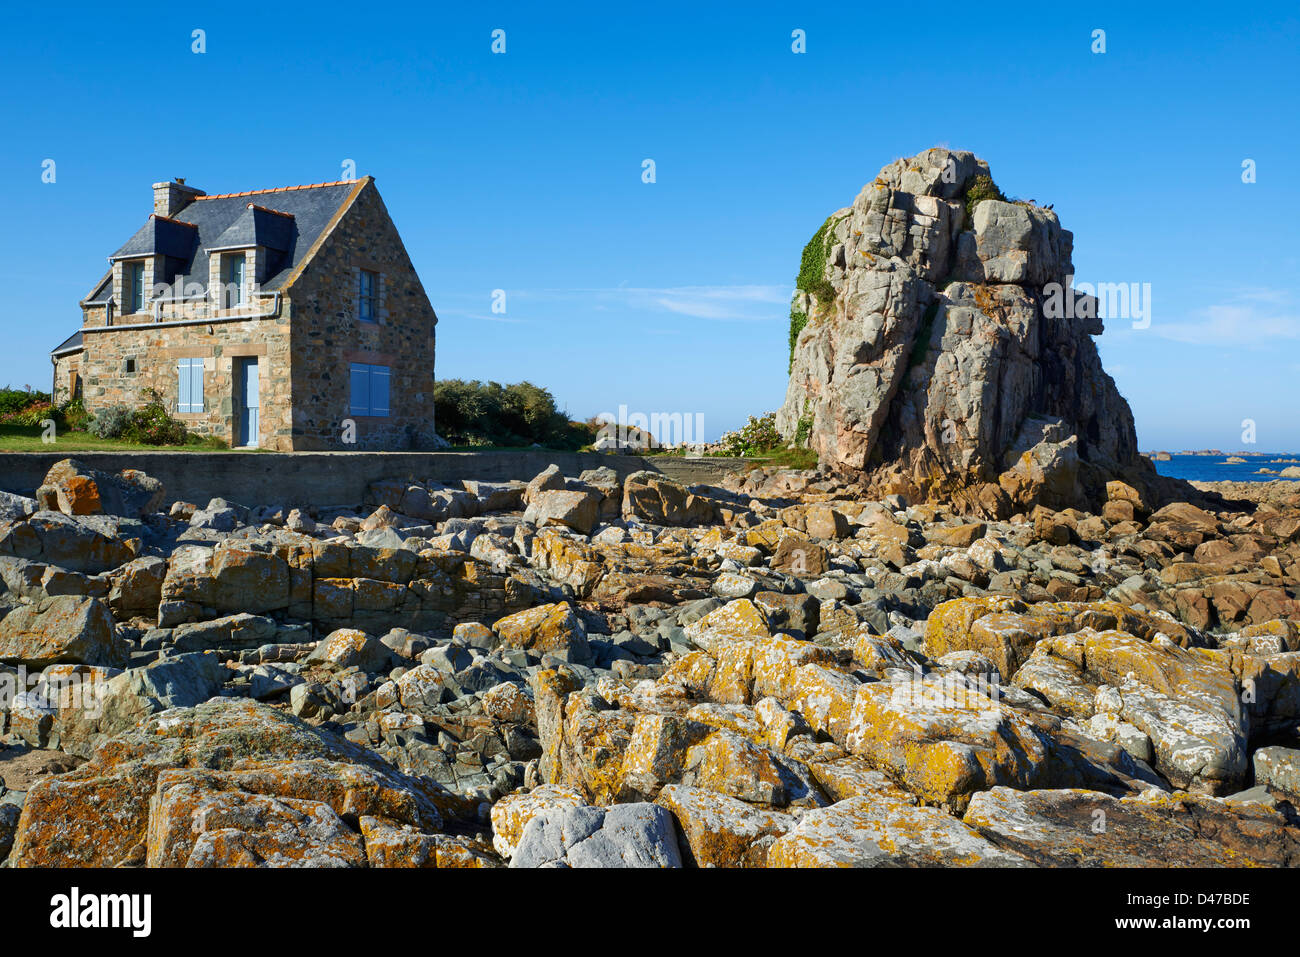 France, Brittany, Cotes d'Armor (22), Plougrescant, house on the coast - Stock Image